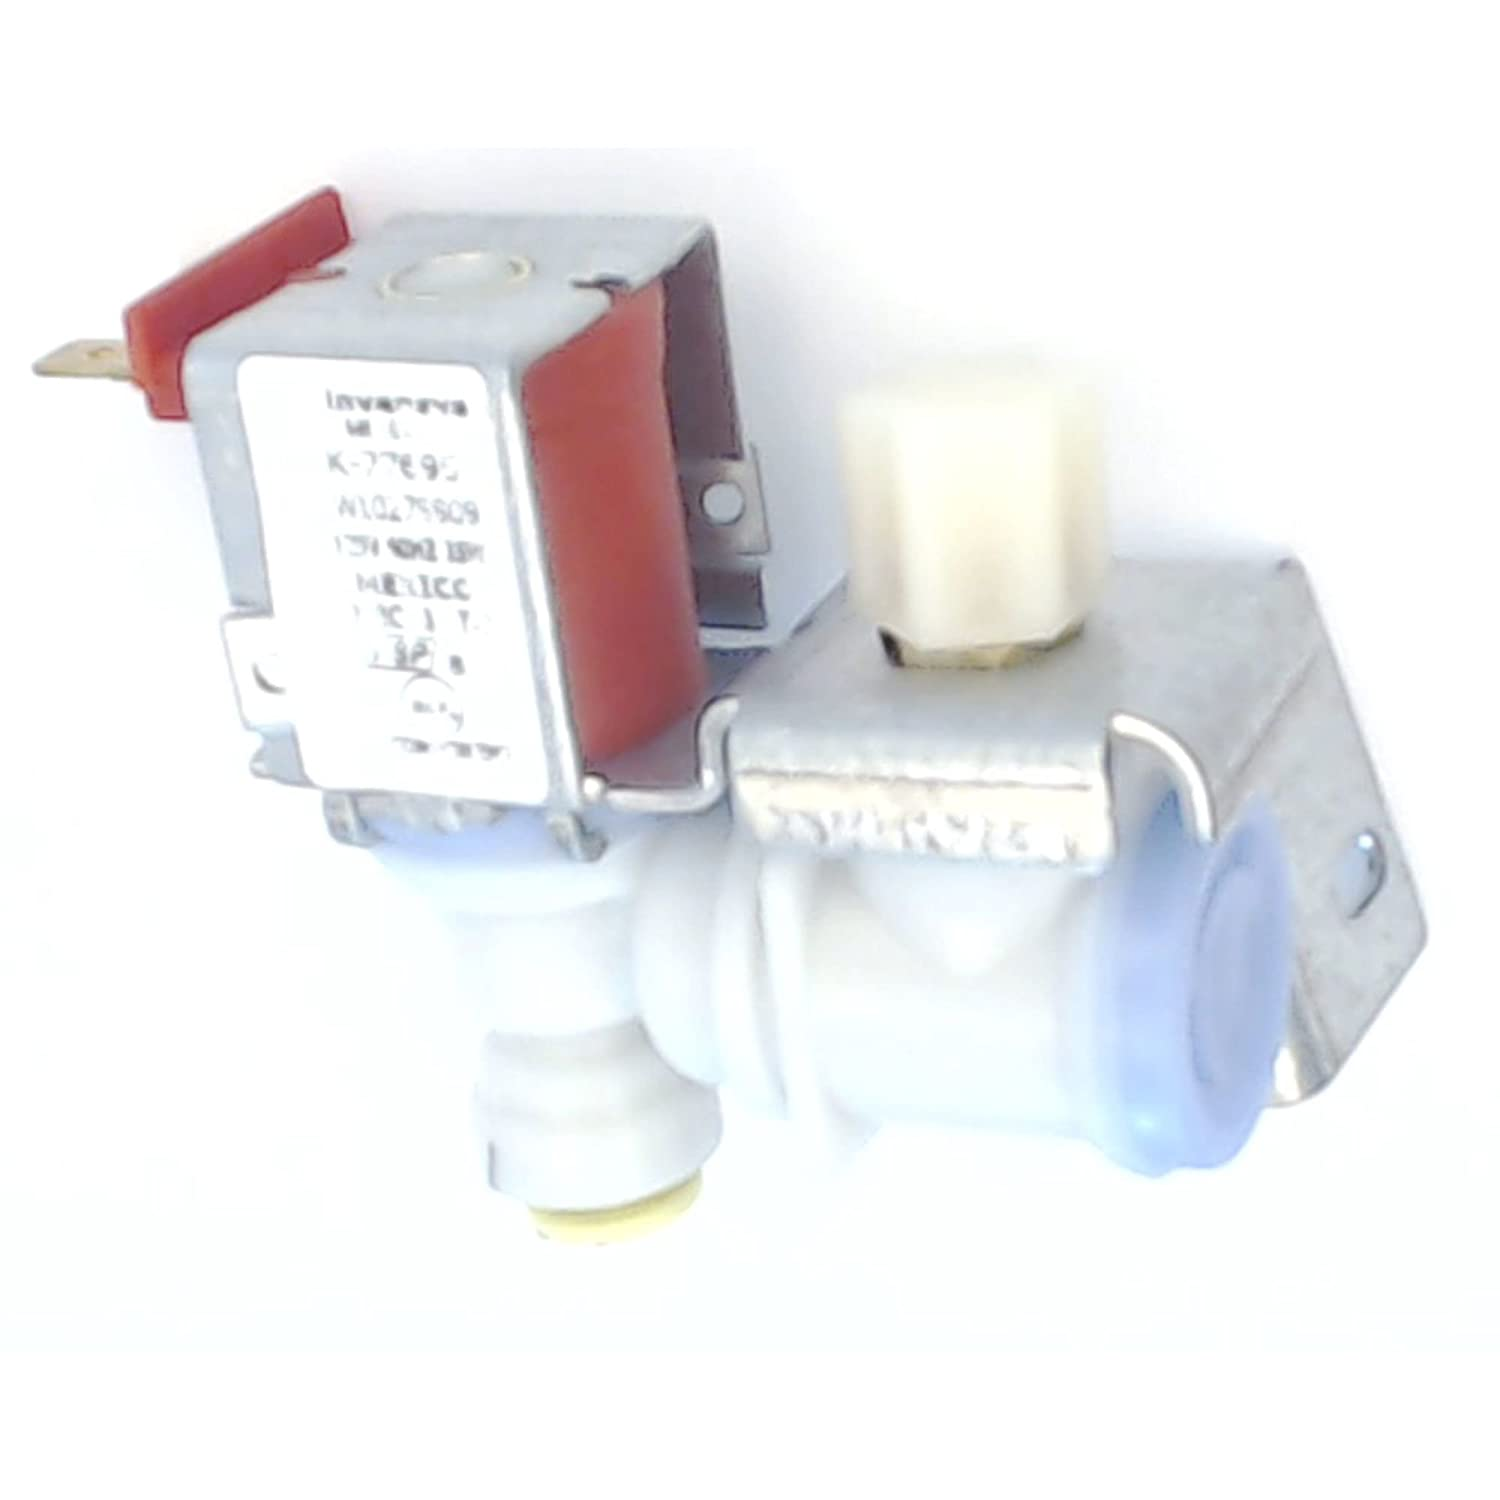 Whirlpool Wpw10279909 Refrigerator Parts Valve Inlet Diagram List For Model Wed7600xw0 Whirlpoolparts Dryer Home Improvement